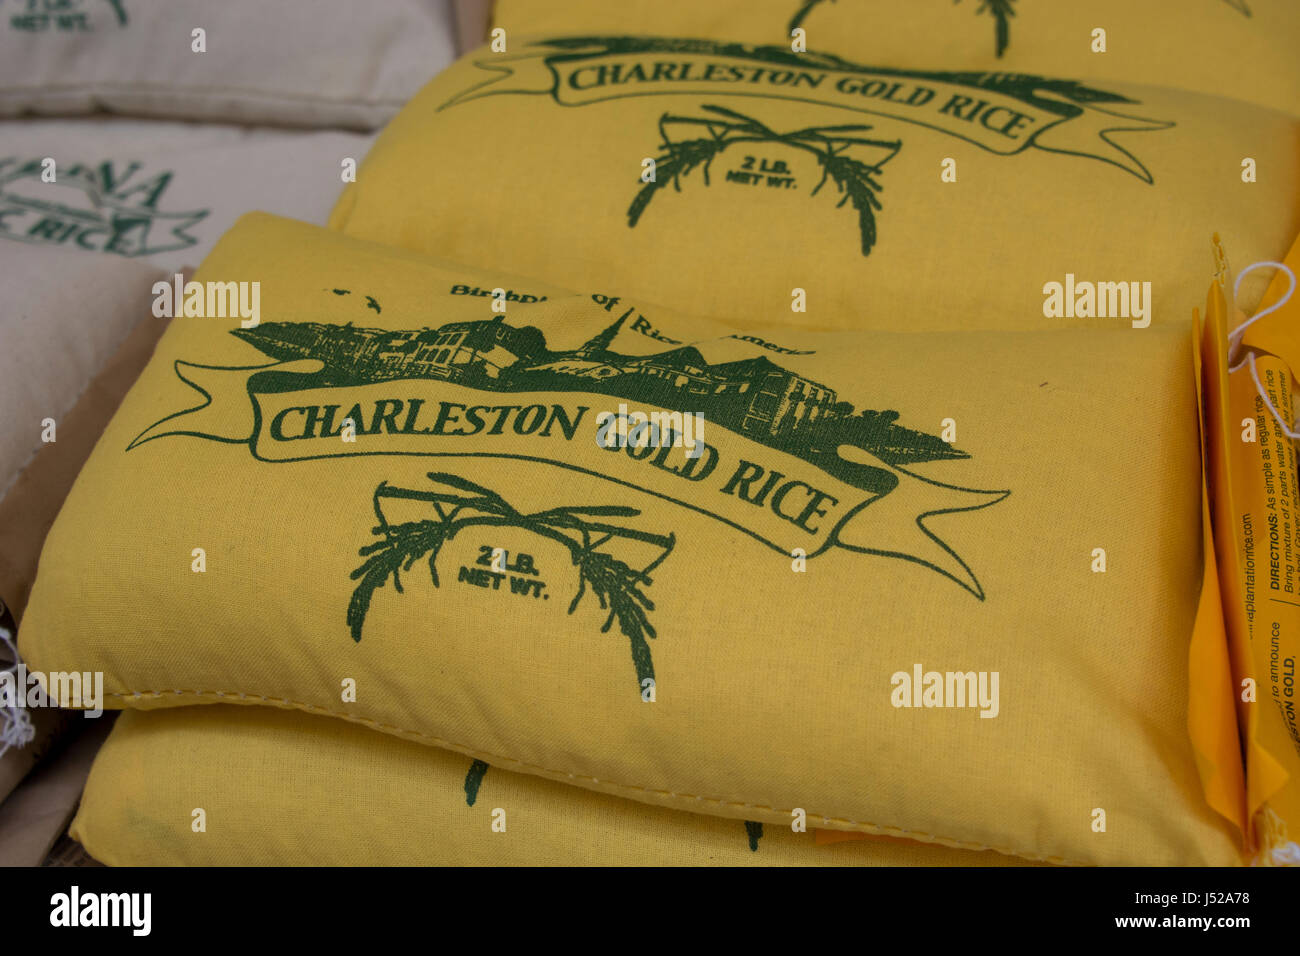 Charleston City Market Stockfotos & Charleston City Market Bilder ...